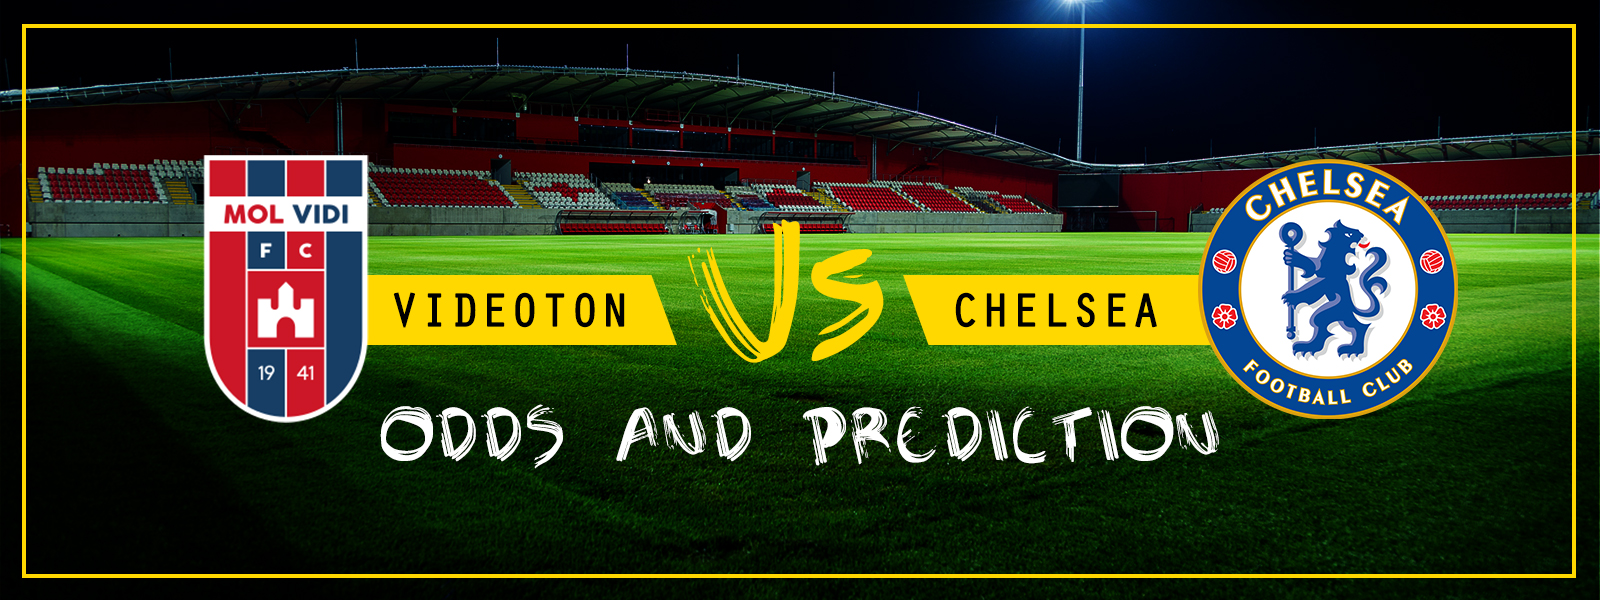 Videoton Vs Chelsea: Odds And Prediction